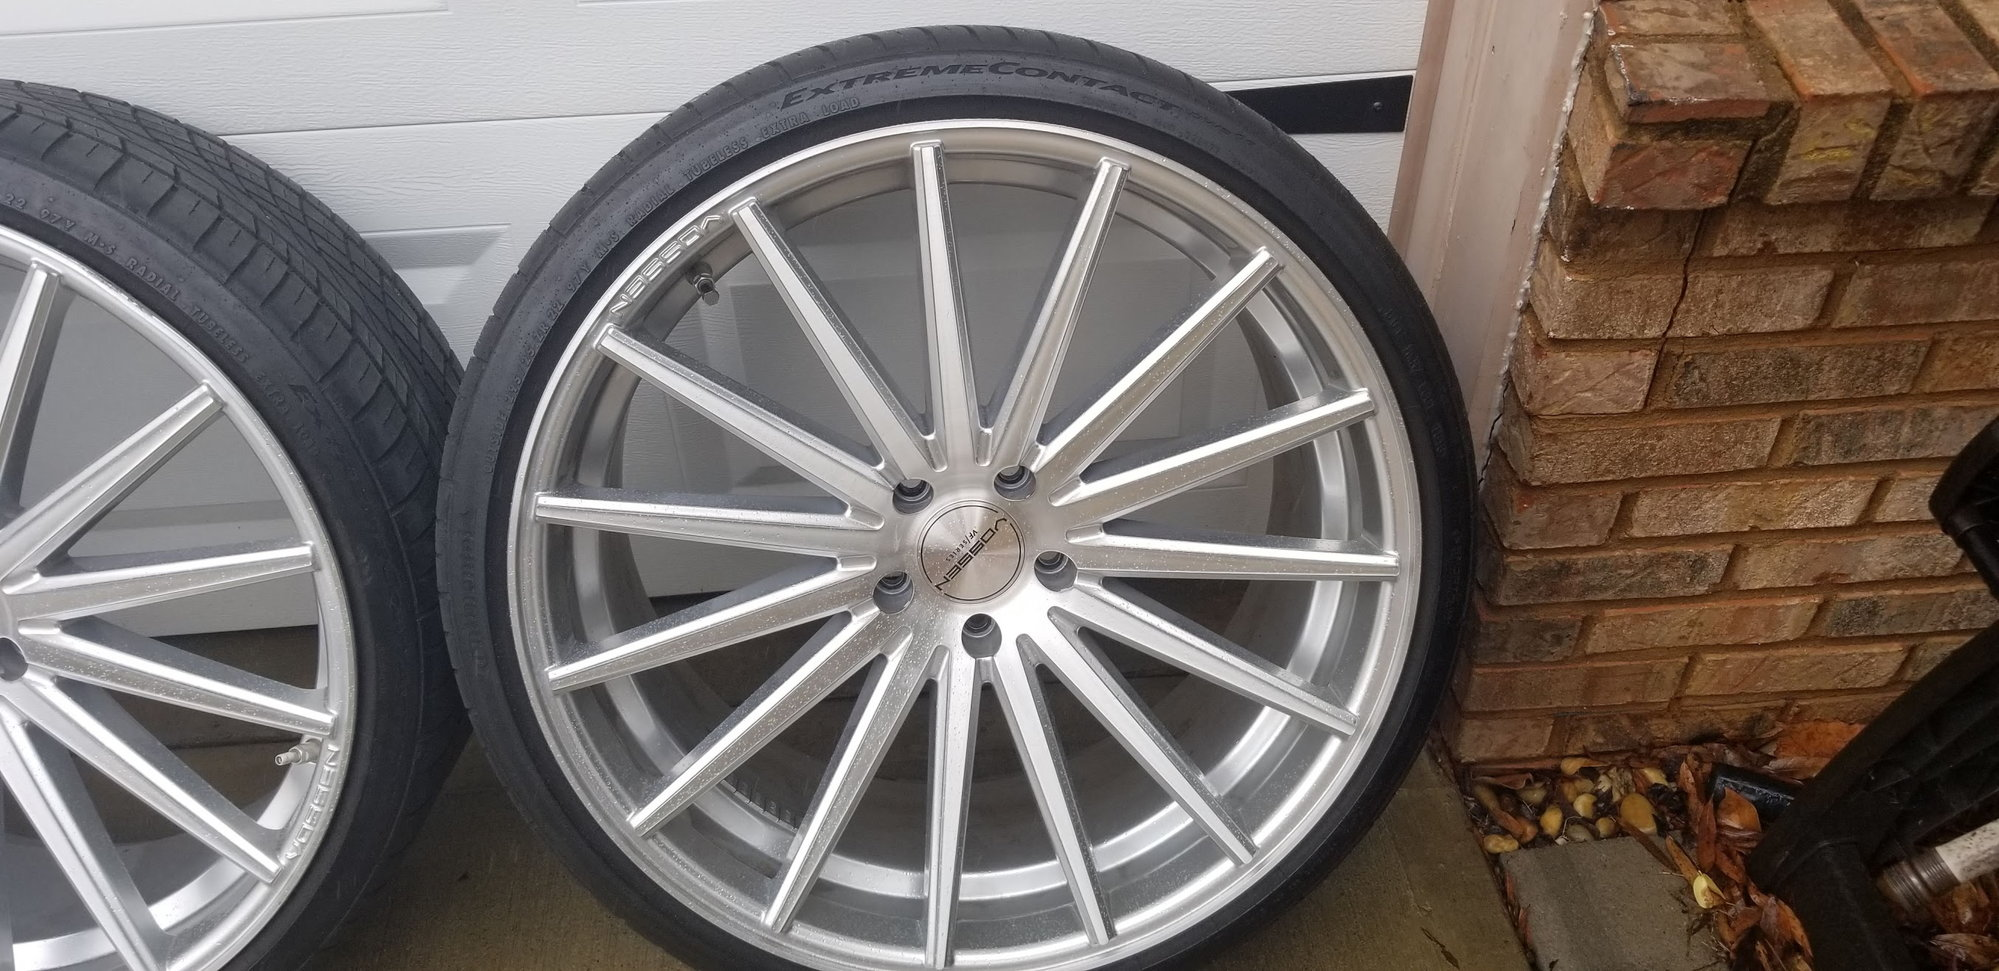 FOR SALE: Set of 4 22 inch Vossen VFS2 Staggered wheels and tires